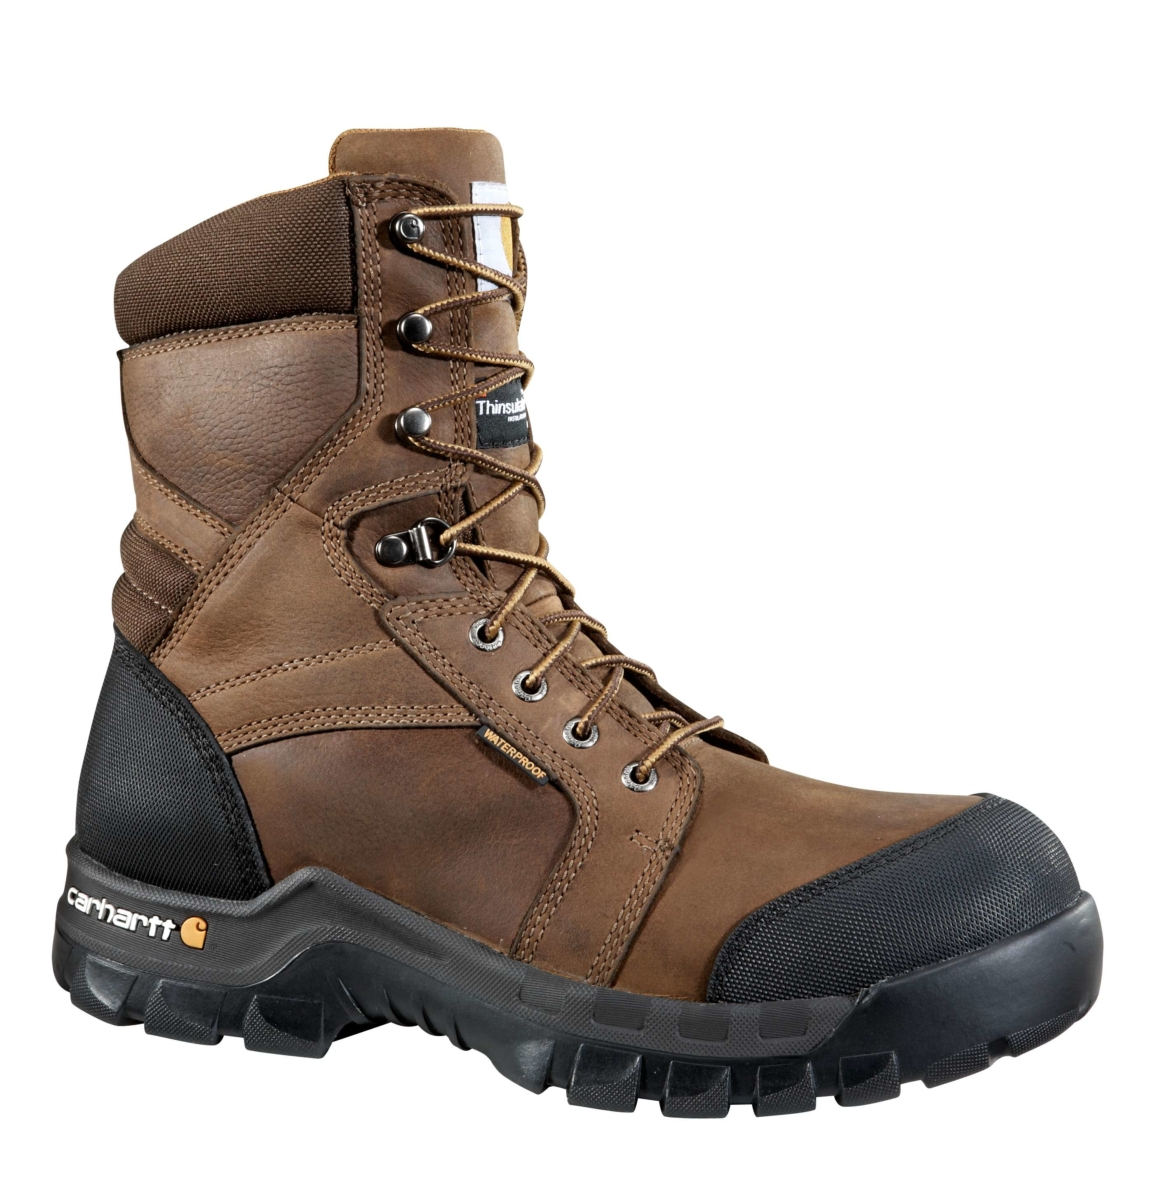 Carhartt Rugged Flex 8-Inch Insulated Composite Toe Work Boot Dk Brown Oil Tanned USA - GOOFASH - Mens BOOTS